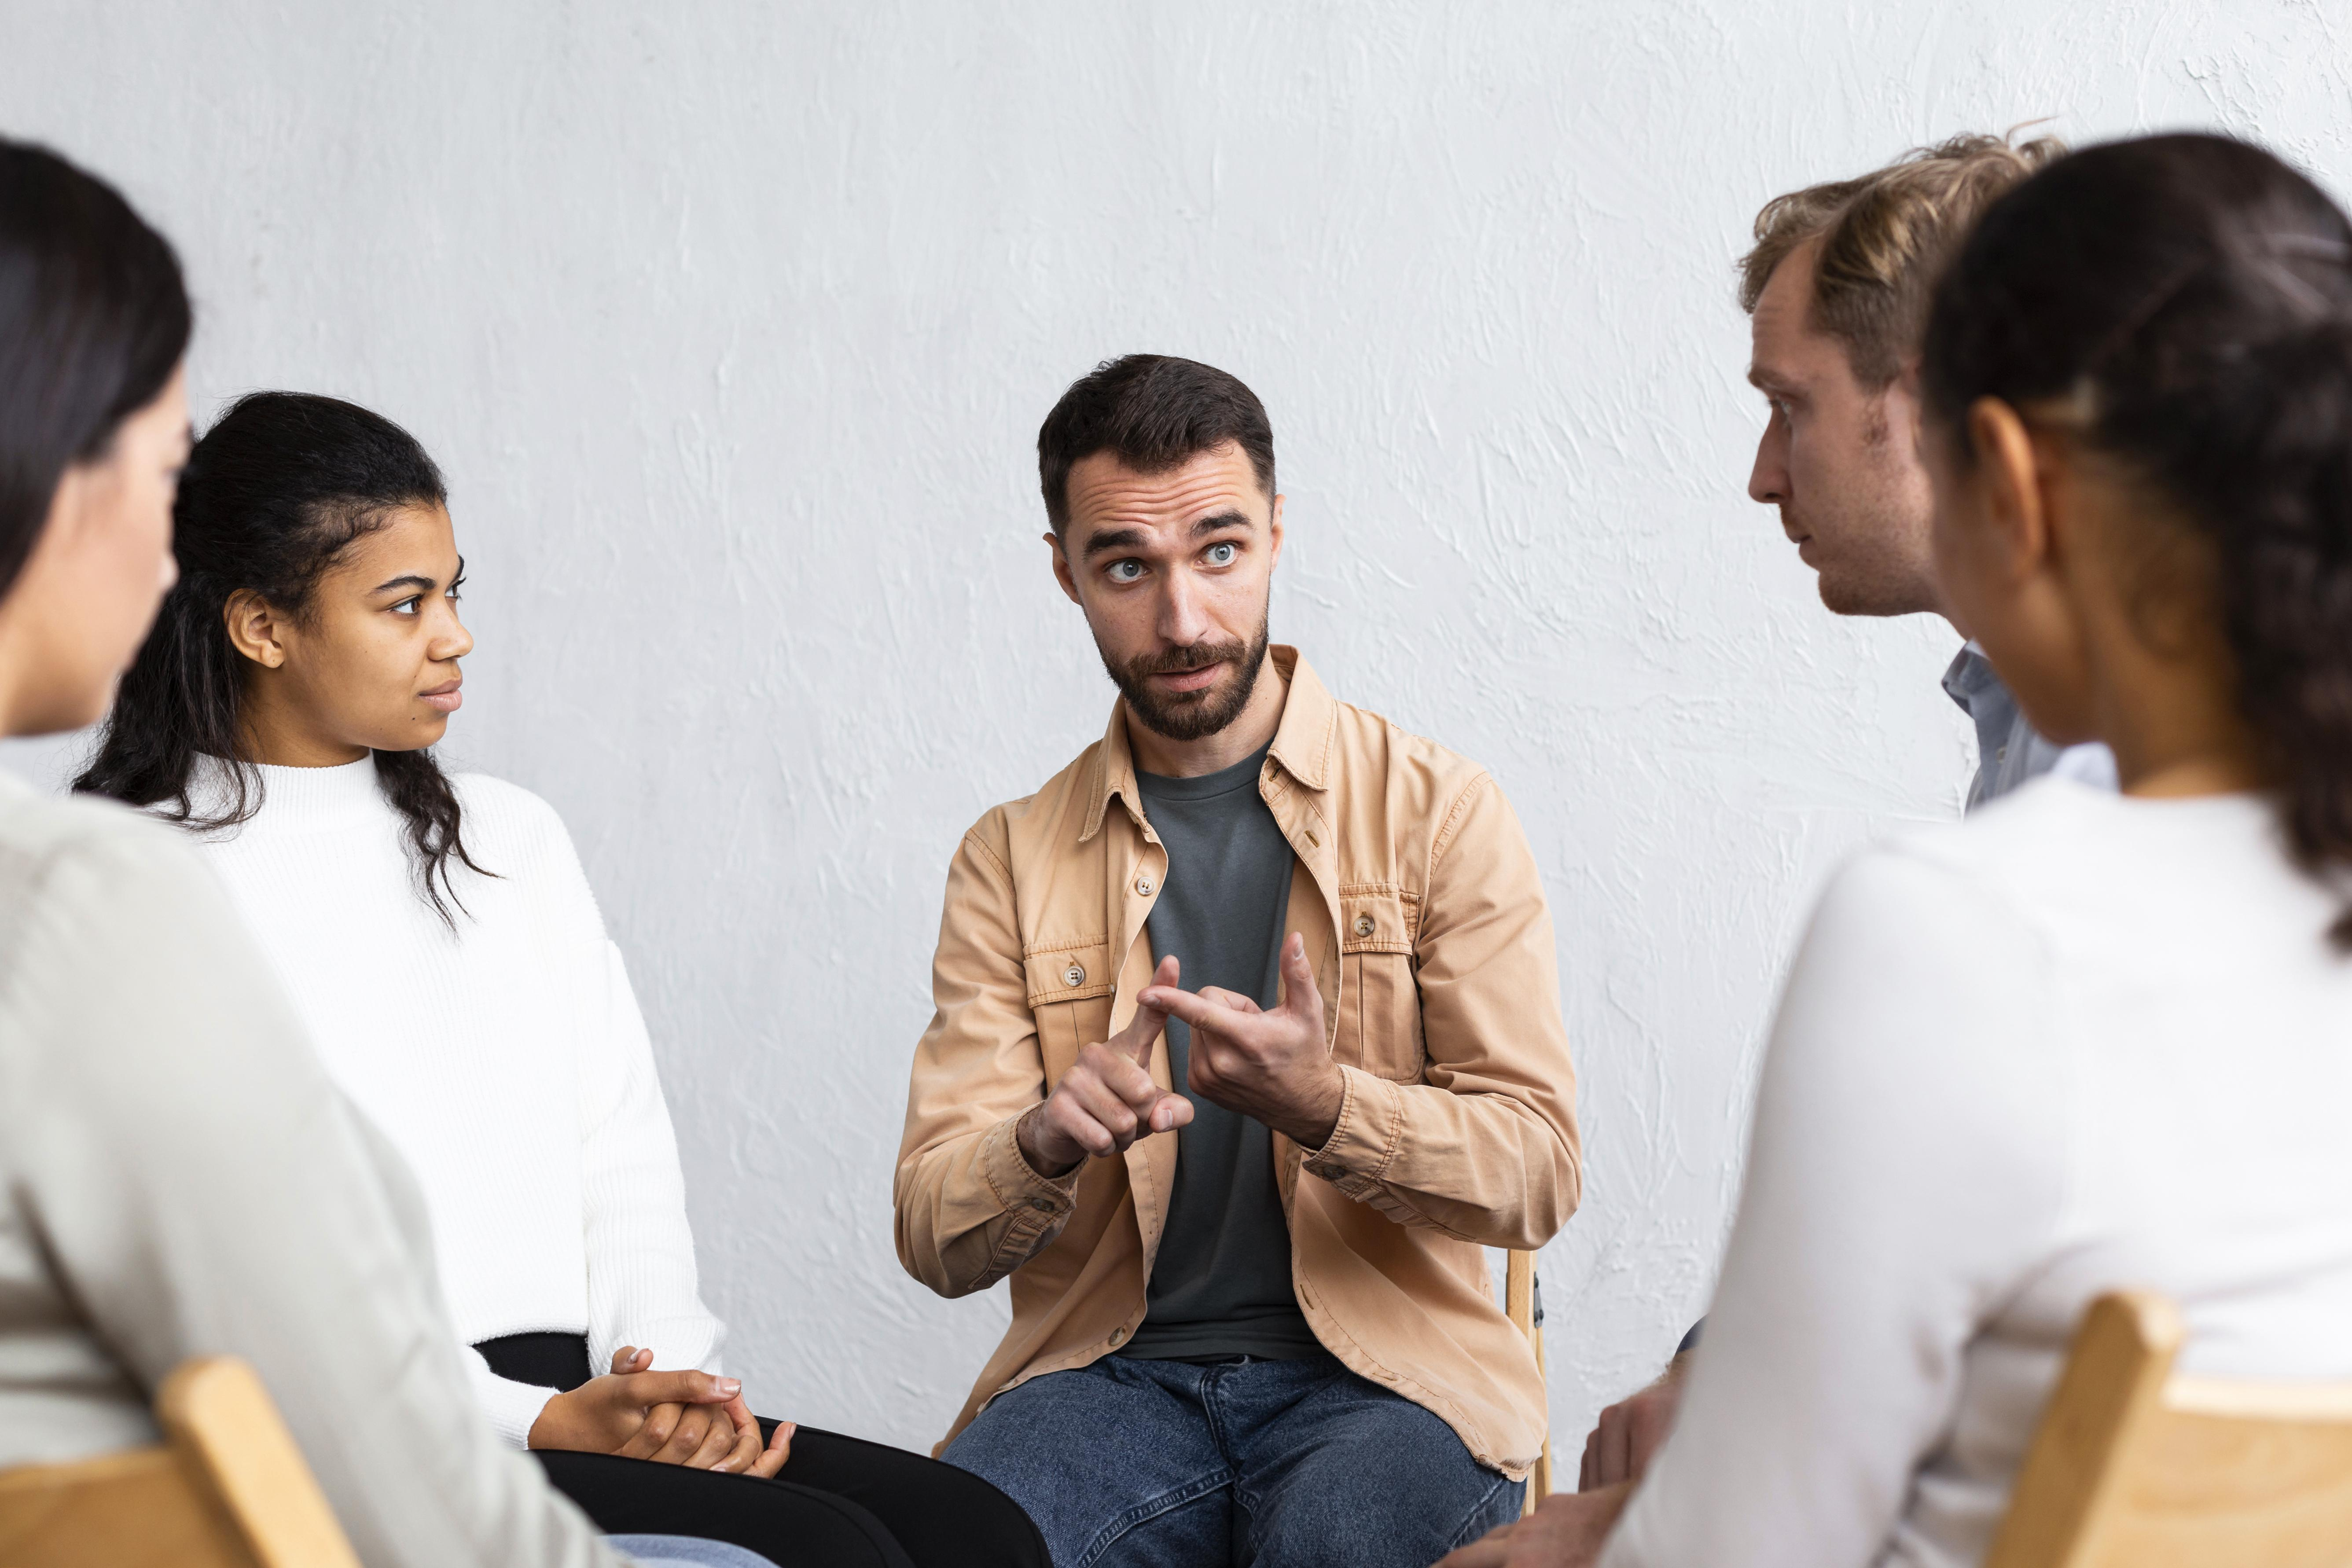 Man explaining his problems in group therapy session